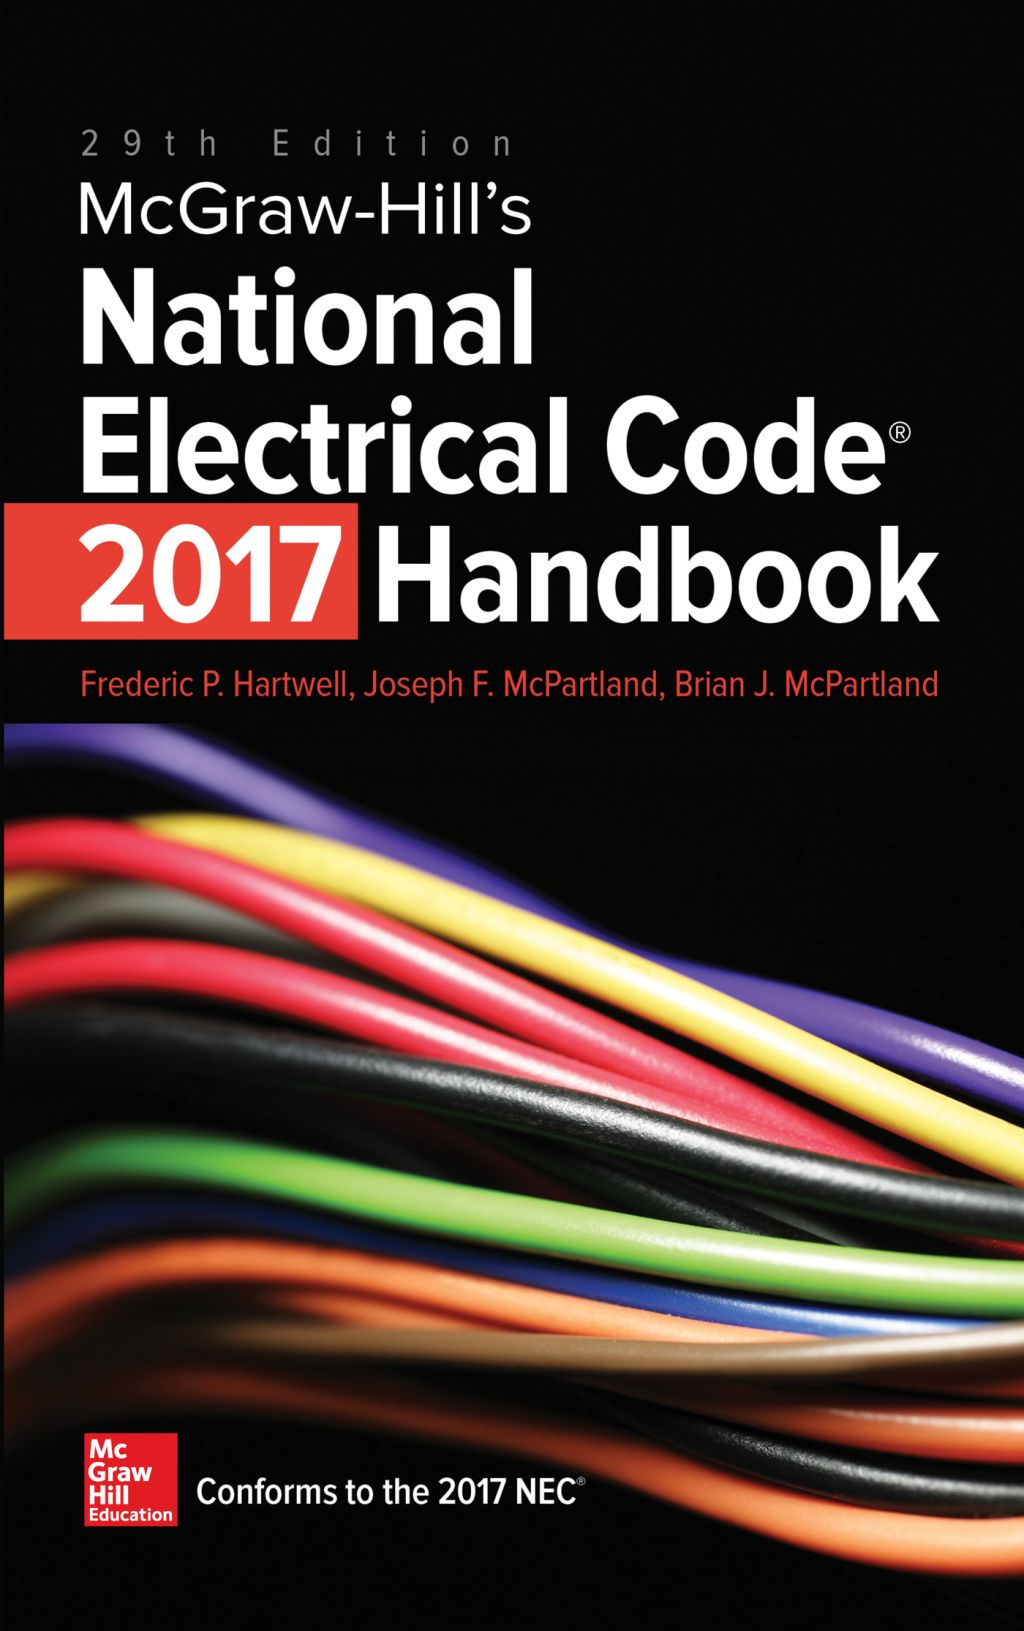 Peachy Mcgraw Hills National Electrical Code 2017 Handbook 29Th Edition Wiring 101 Olytiaxxcnl